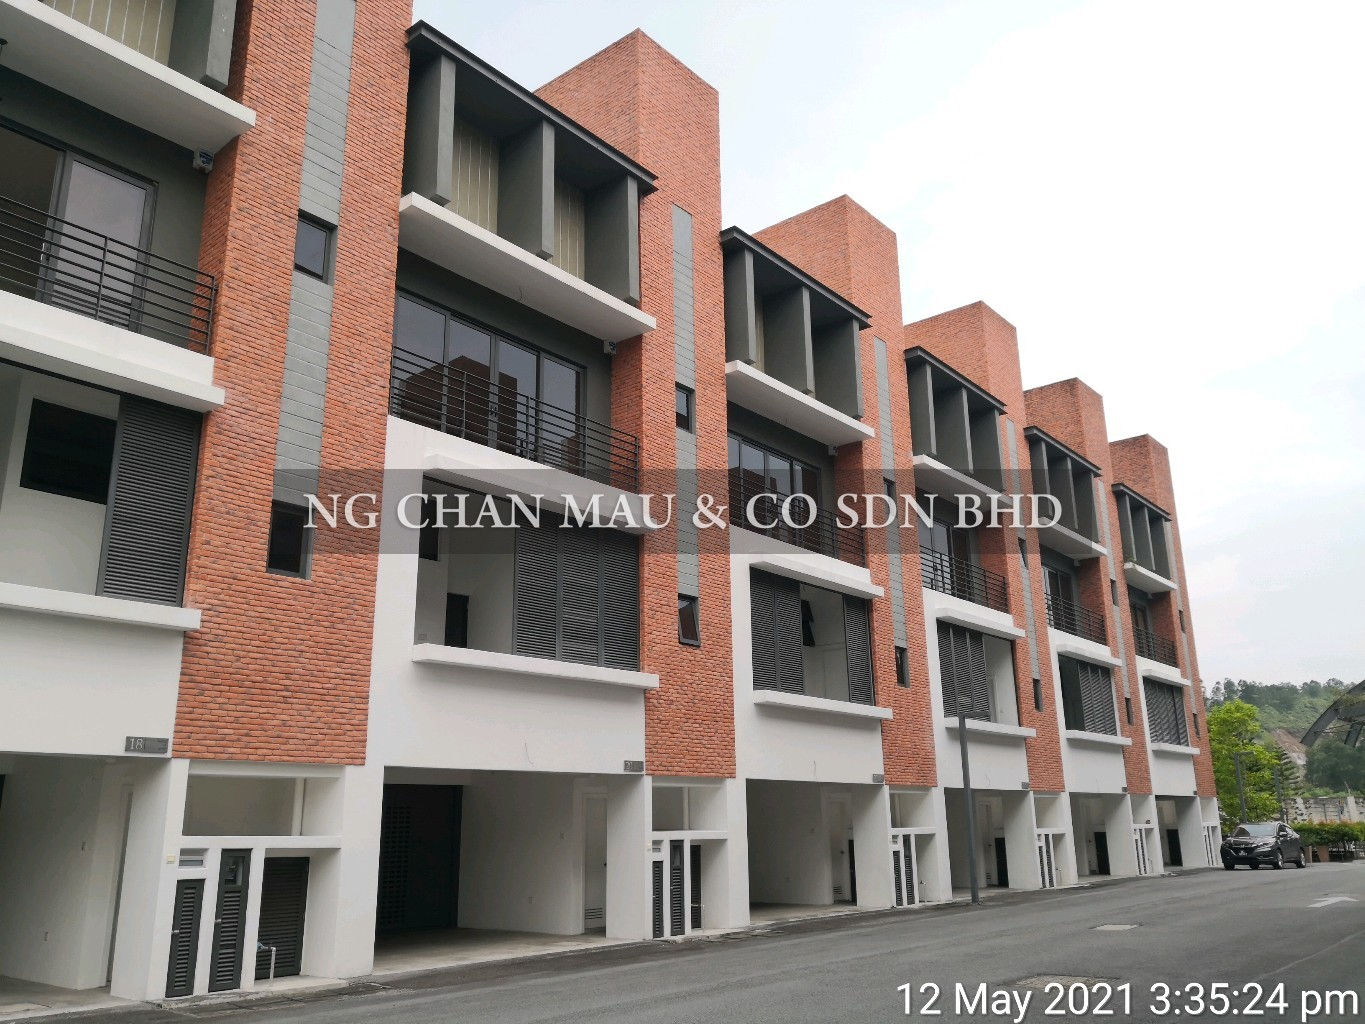 [Vacant Unit + Price dropped 46%] Freehold 5 + 1 Room & 5 Bathroom 3.5 Storey Terrace House with a Private Swimming Pool & a Lift